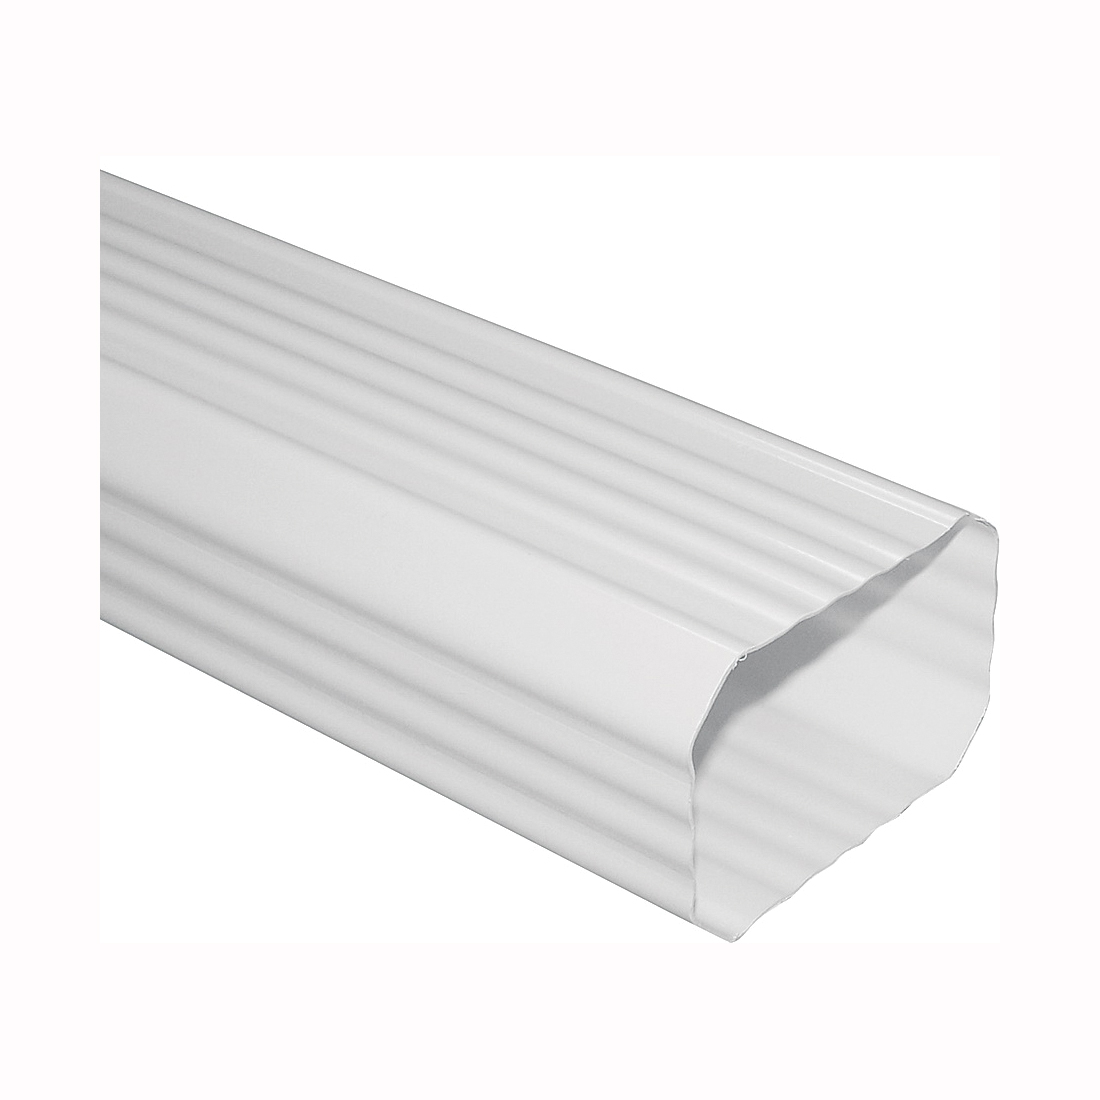 Picture of GENOVA AW200 Downspout, 2 in W, 3 in H, 10 ft L, Aluminum, White